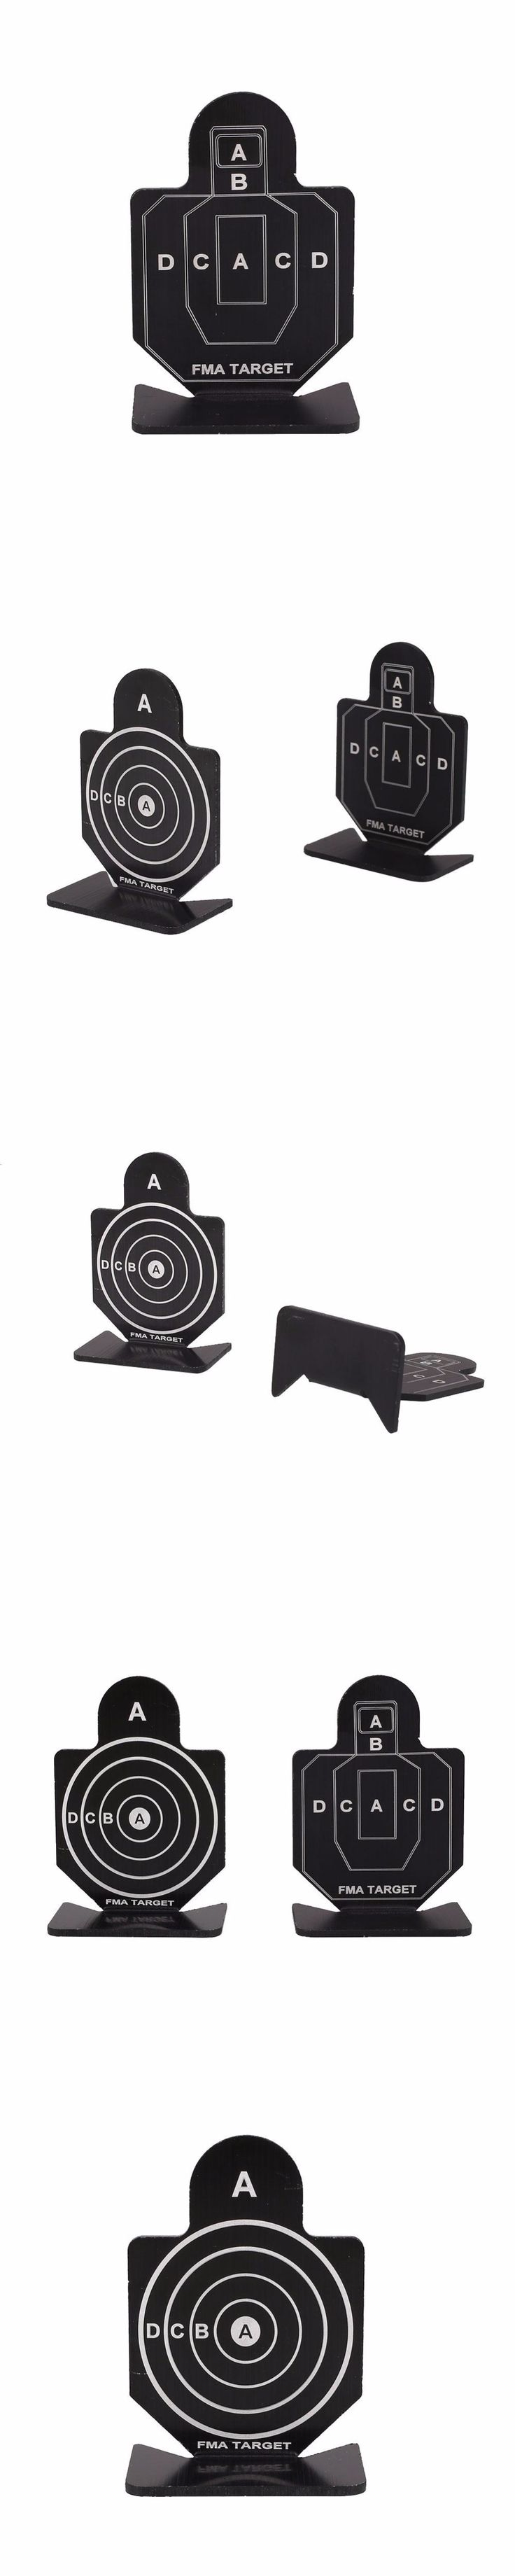 Metal Airsoft Hunting Aim Shooting Target Set Archery Training Practice Accessory